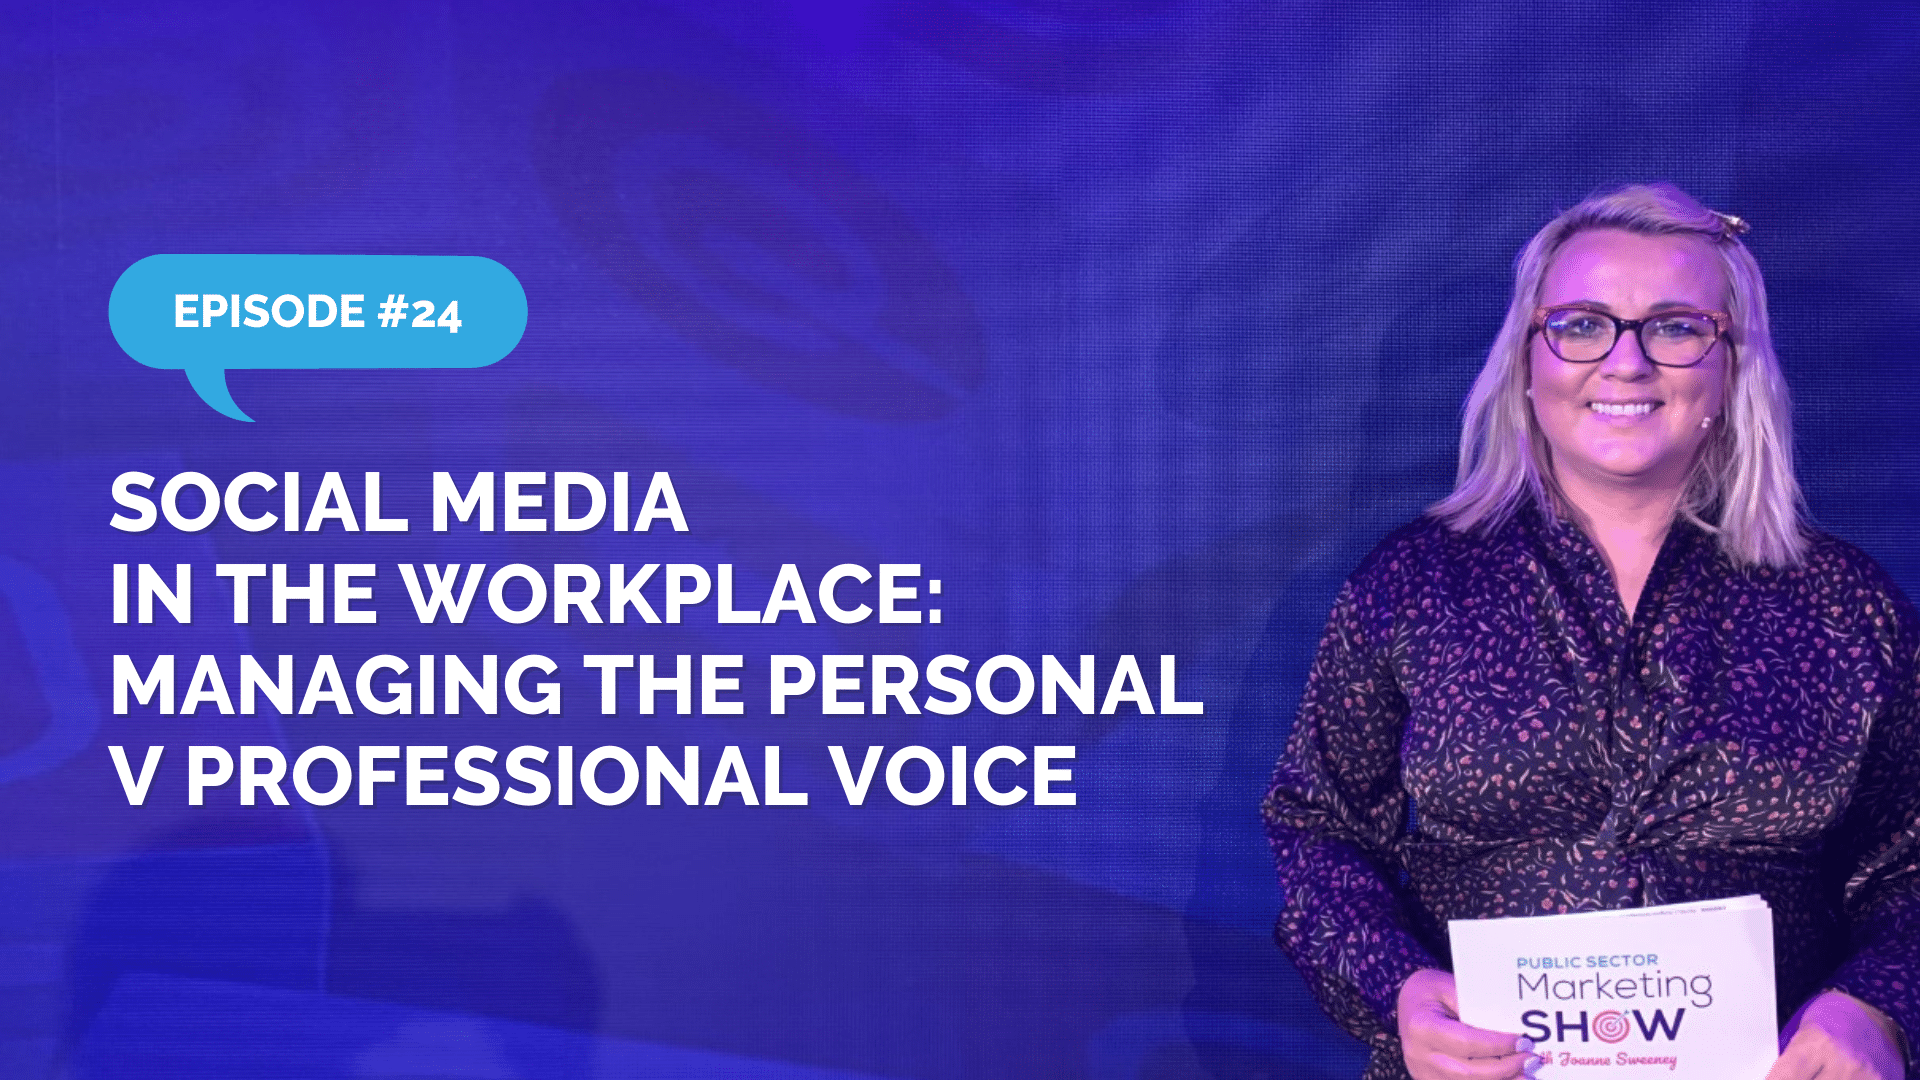 Episode 24 - Social Media in the Workplace: Managing The Personal V Professional Voice